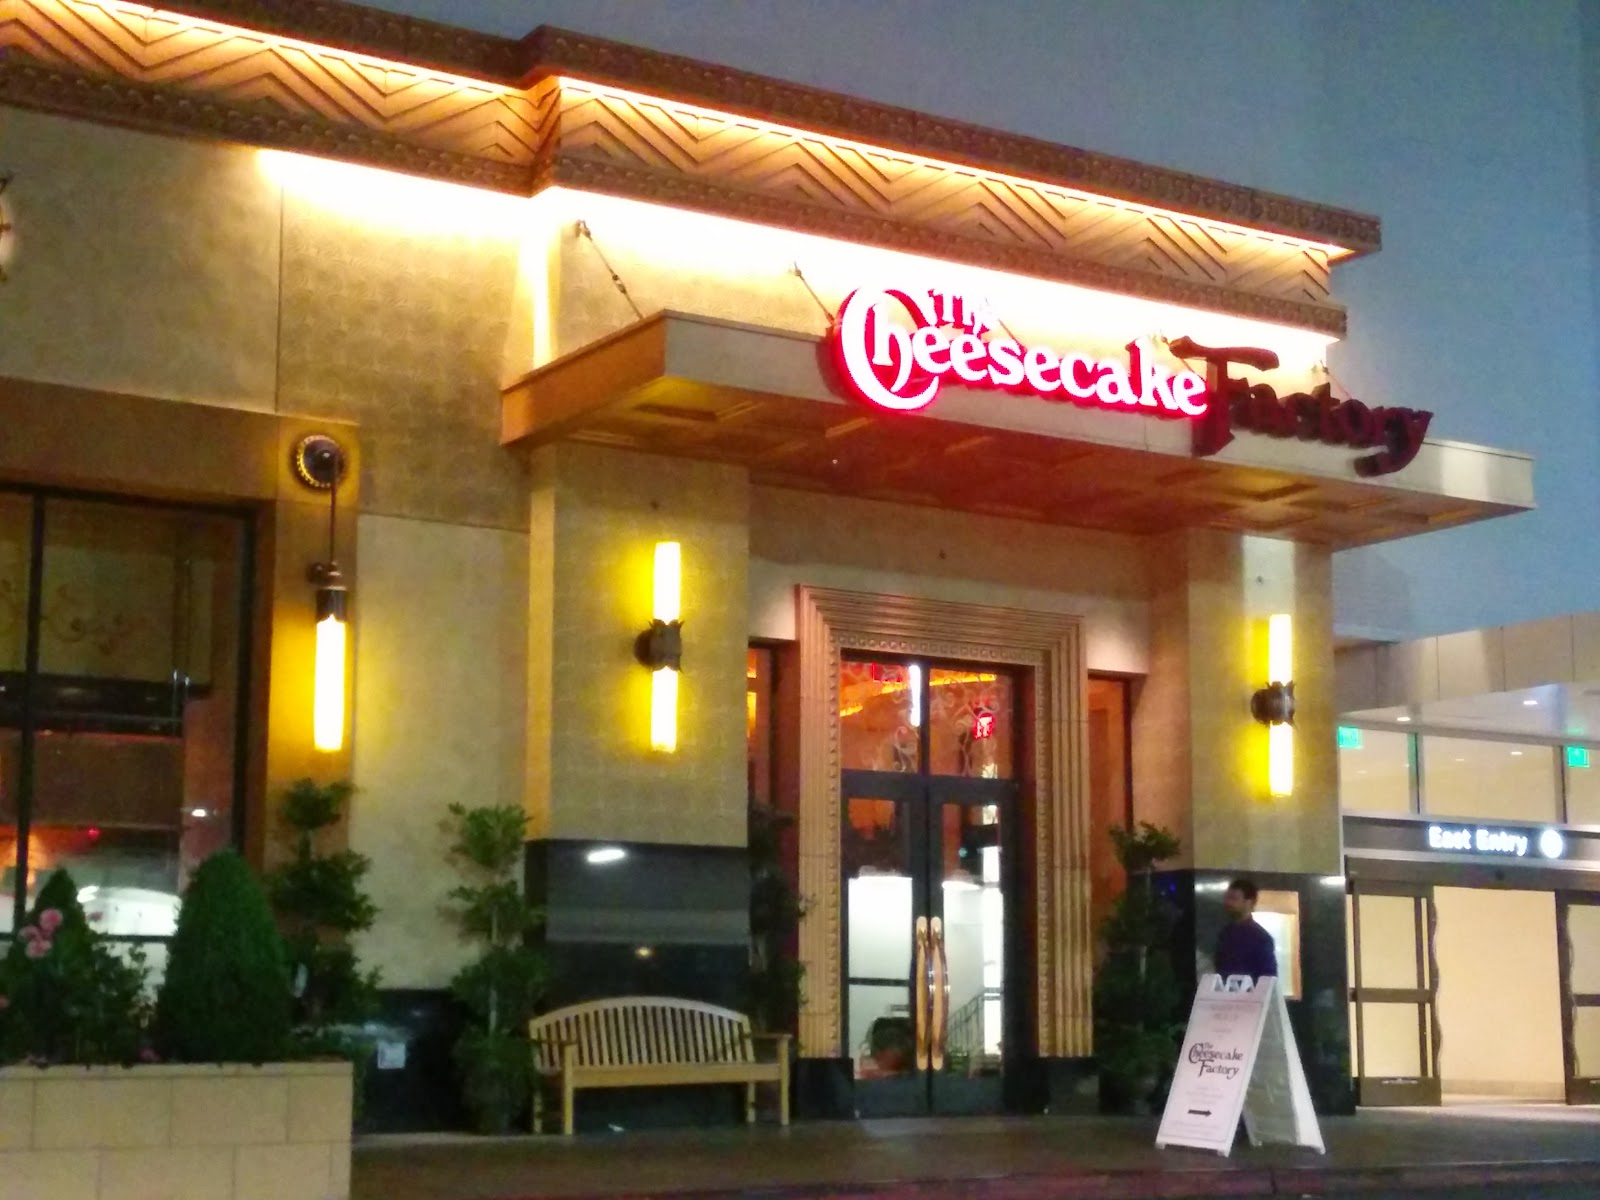 In The Us Tourist Areas Are Usually Flush With Family Restaurant Chains Where A Decent If Geneous Corporate Kitchen Designed Meal Can Be Found At An